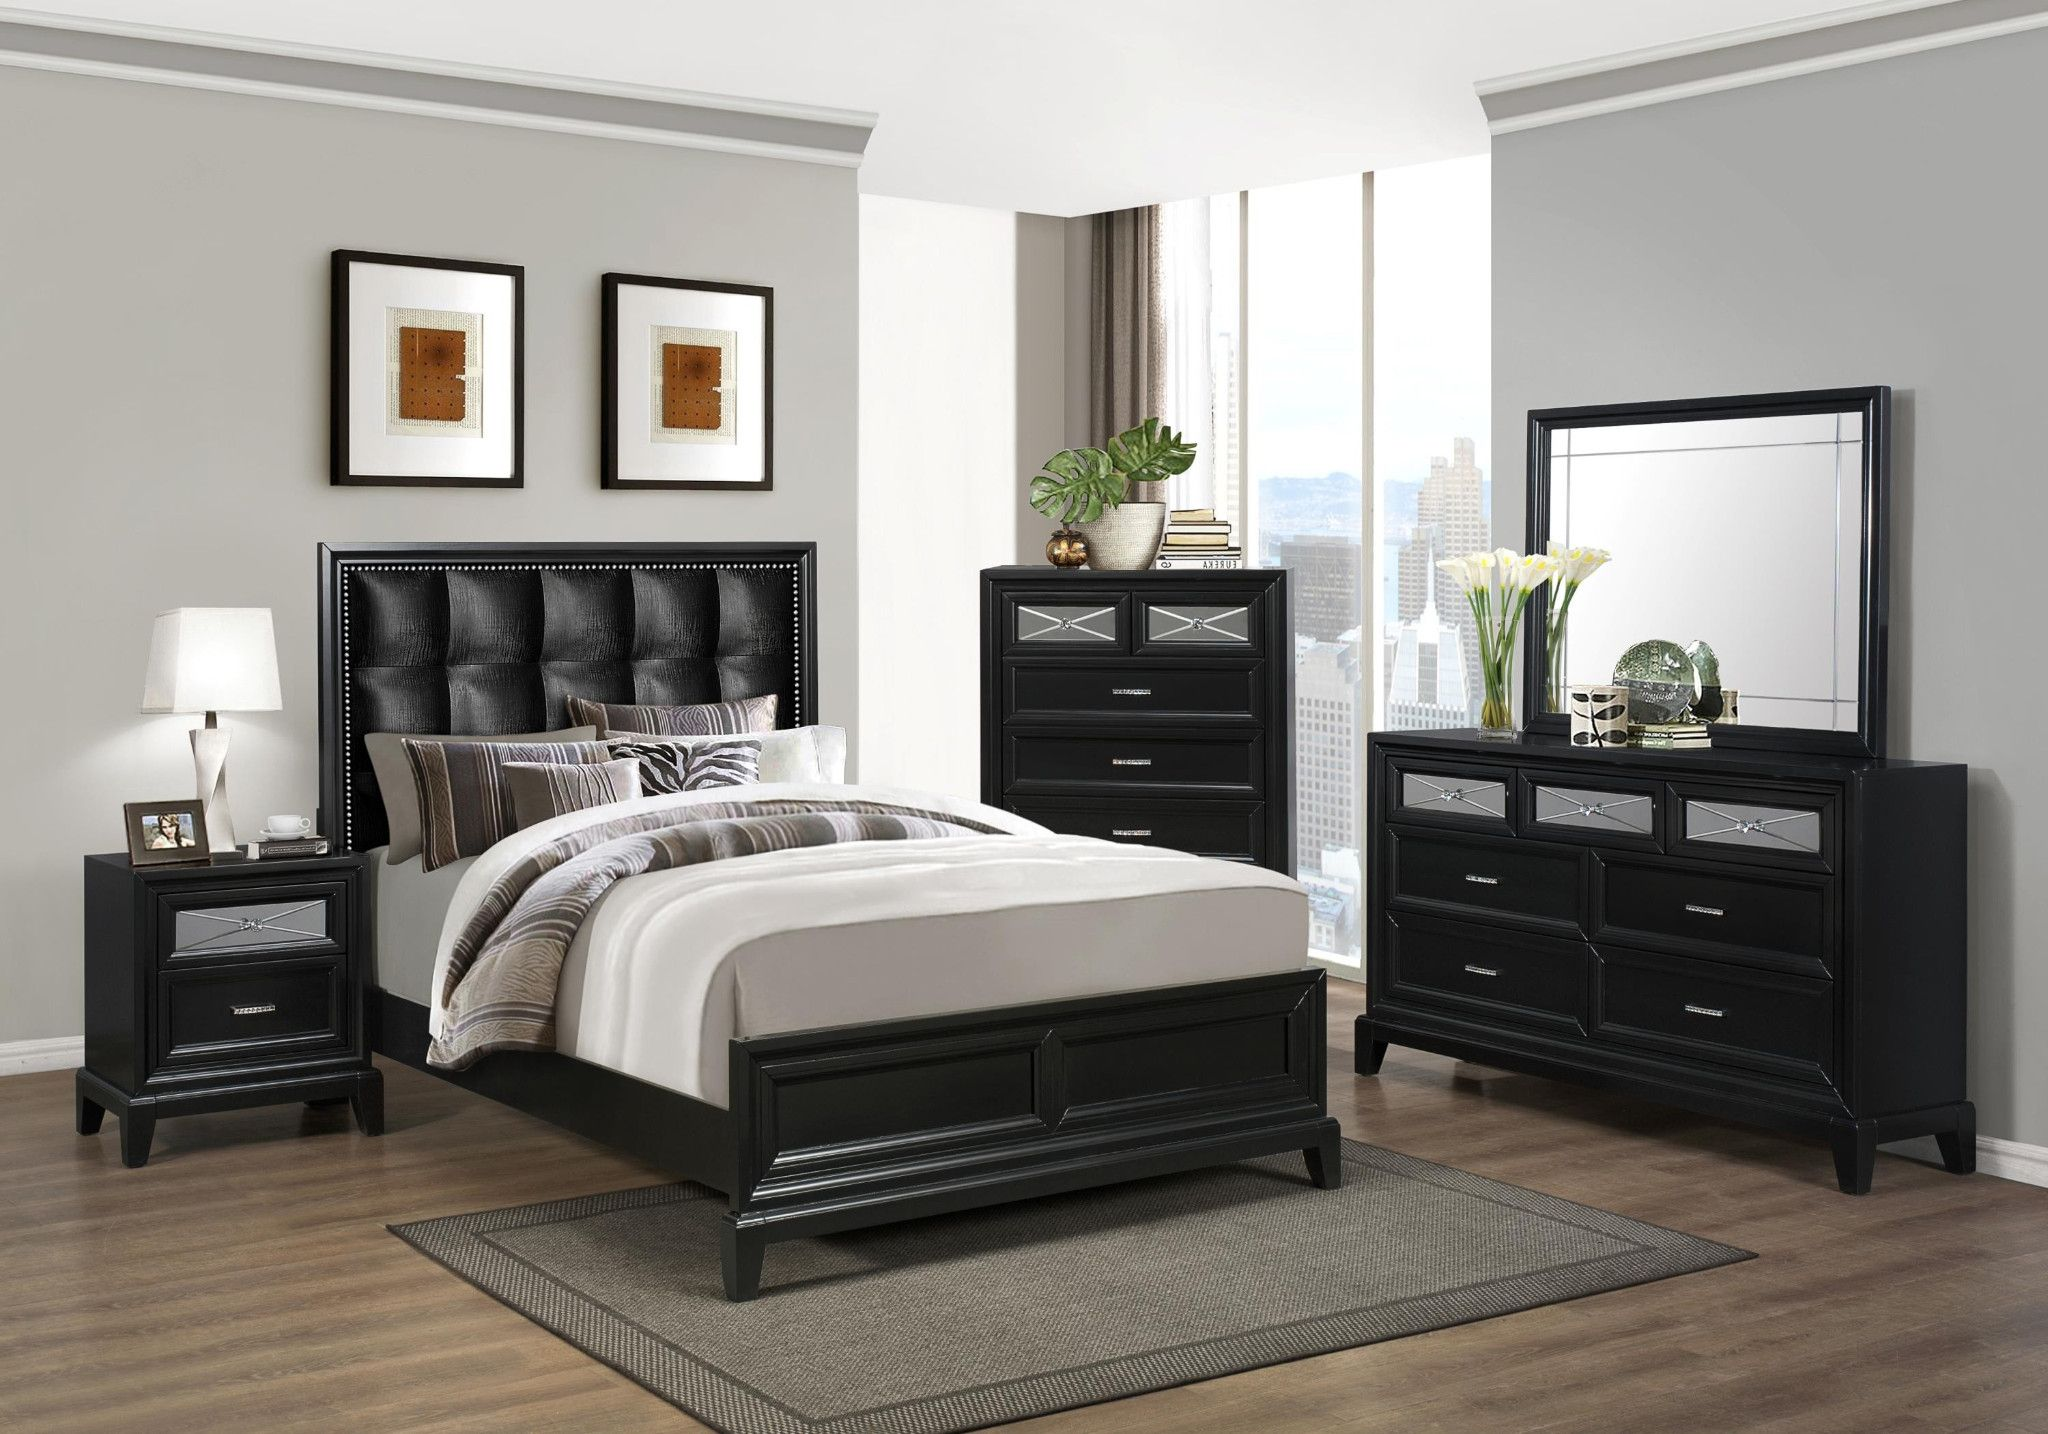 Elise 5 Piece Bedroom Suite, With Black Headboard Dresser, Mirror, Chest,  Bed